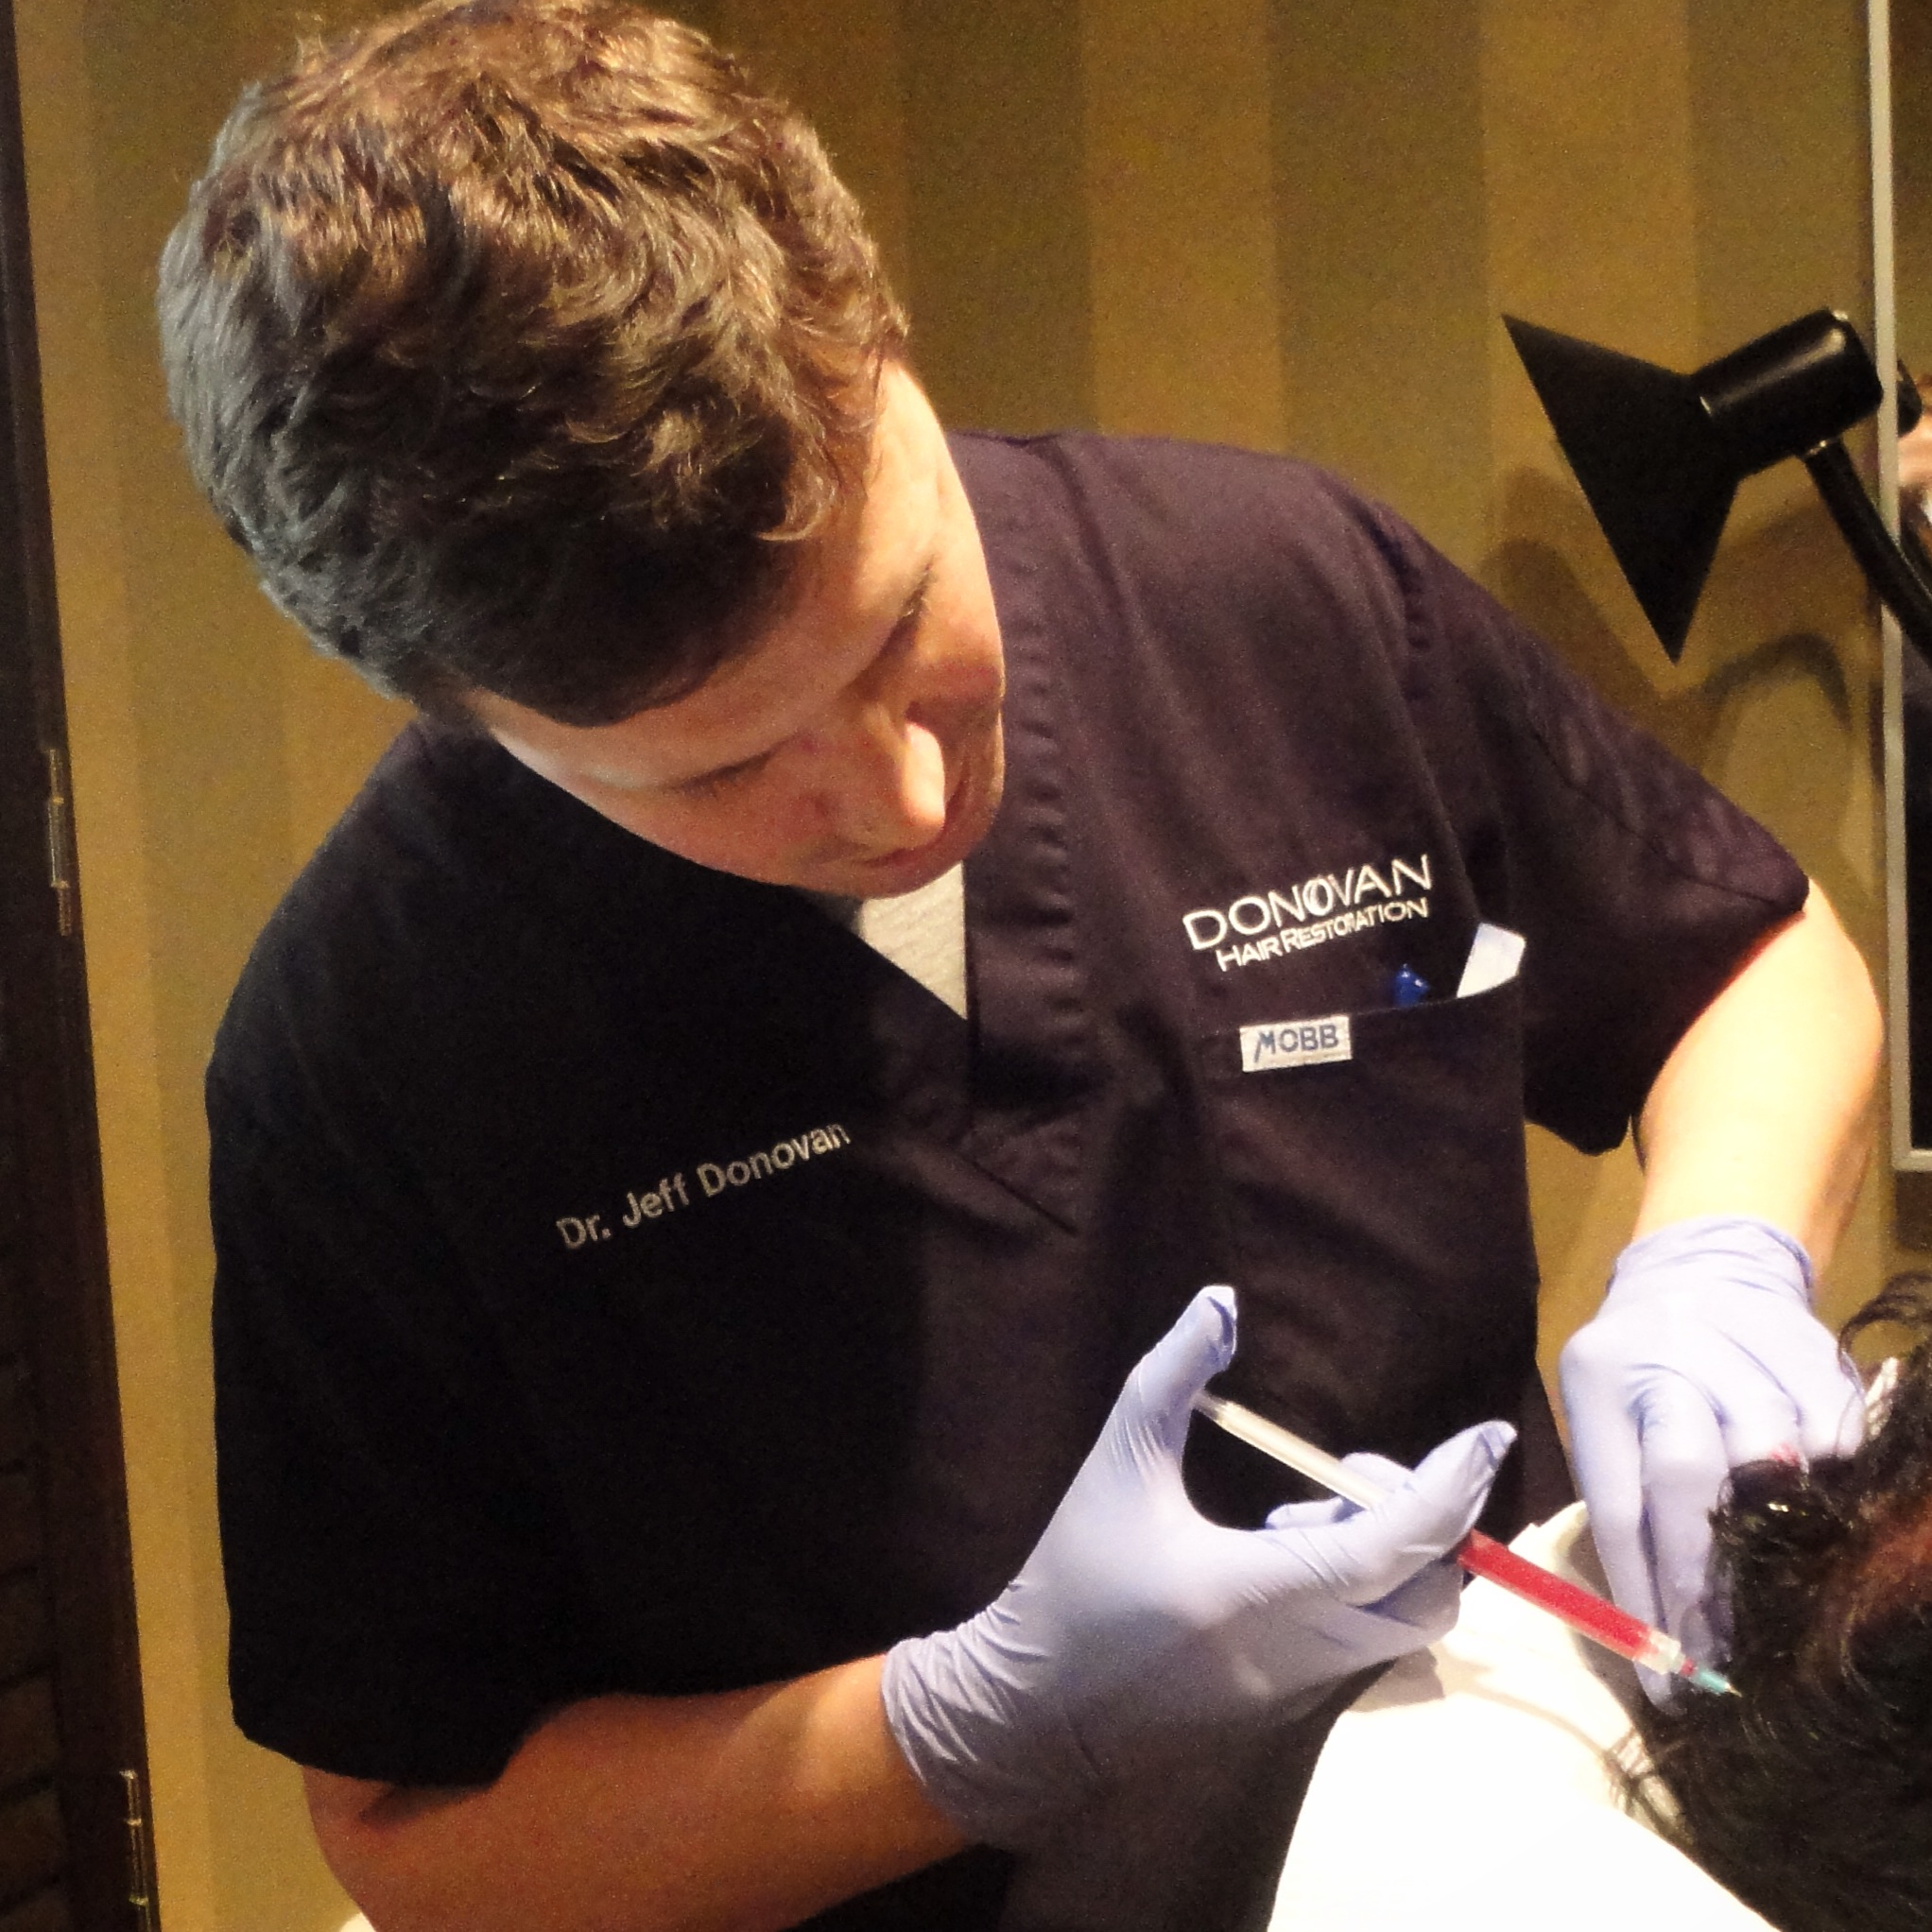 Dr. Donovan demonstrating the technique of platelet rich plasma injections to participants of the Fall 2014 Hair Course in Toronto